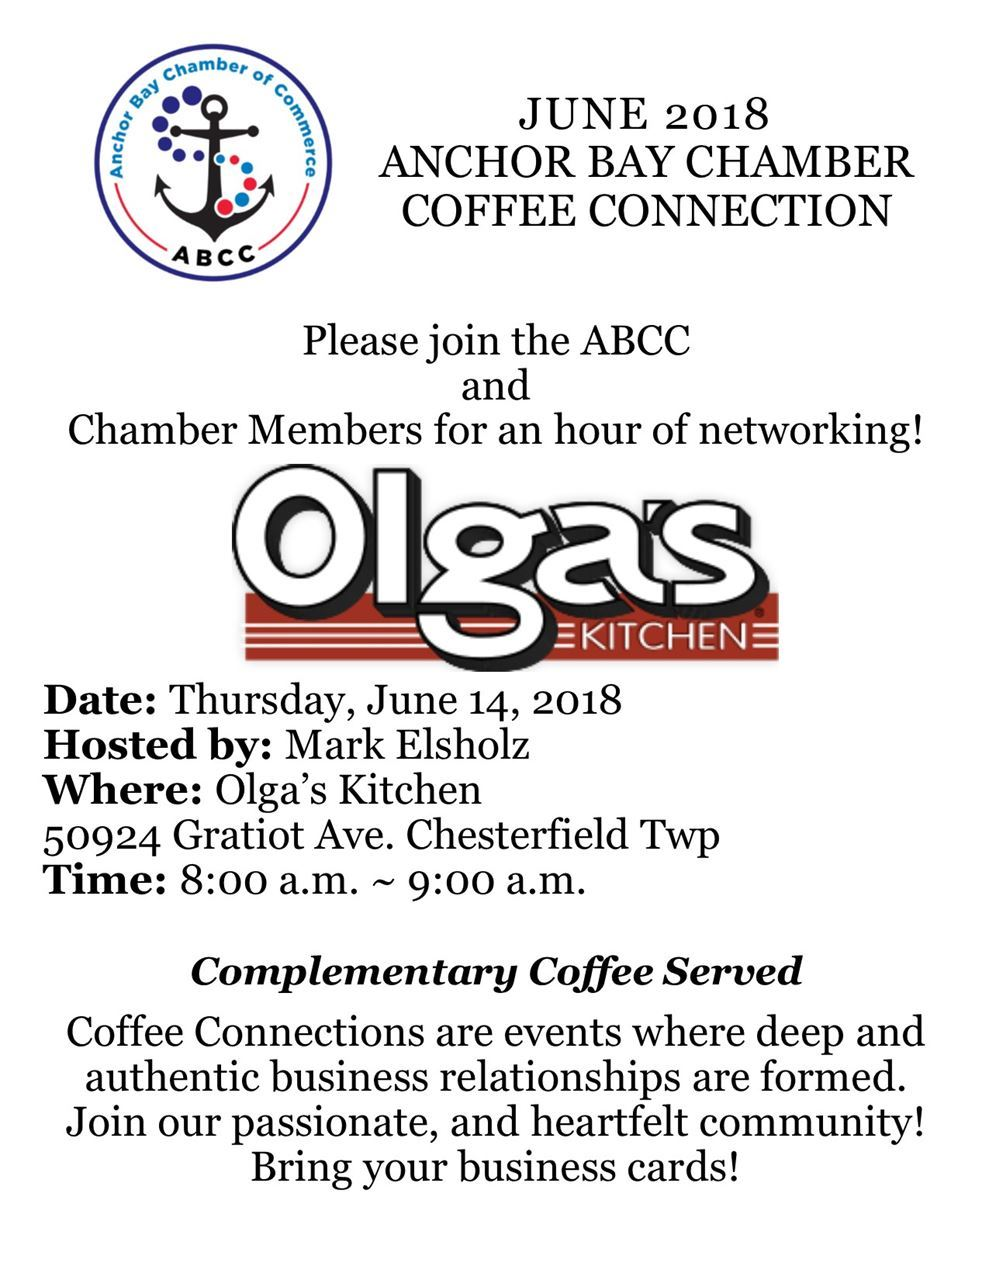 Anchor Bay Chamber of Commerce - June 2018 Coffee Connection